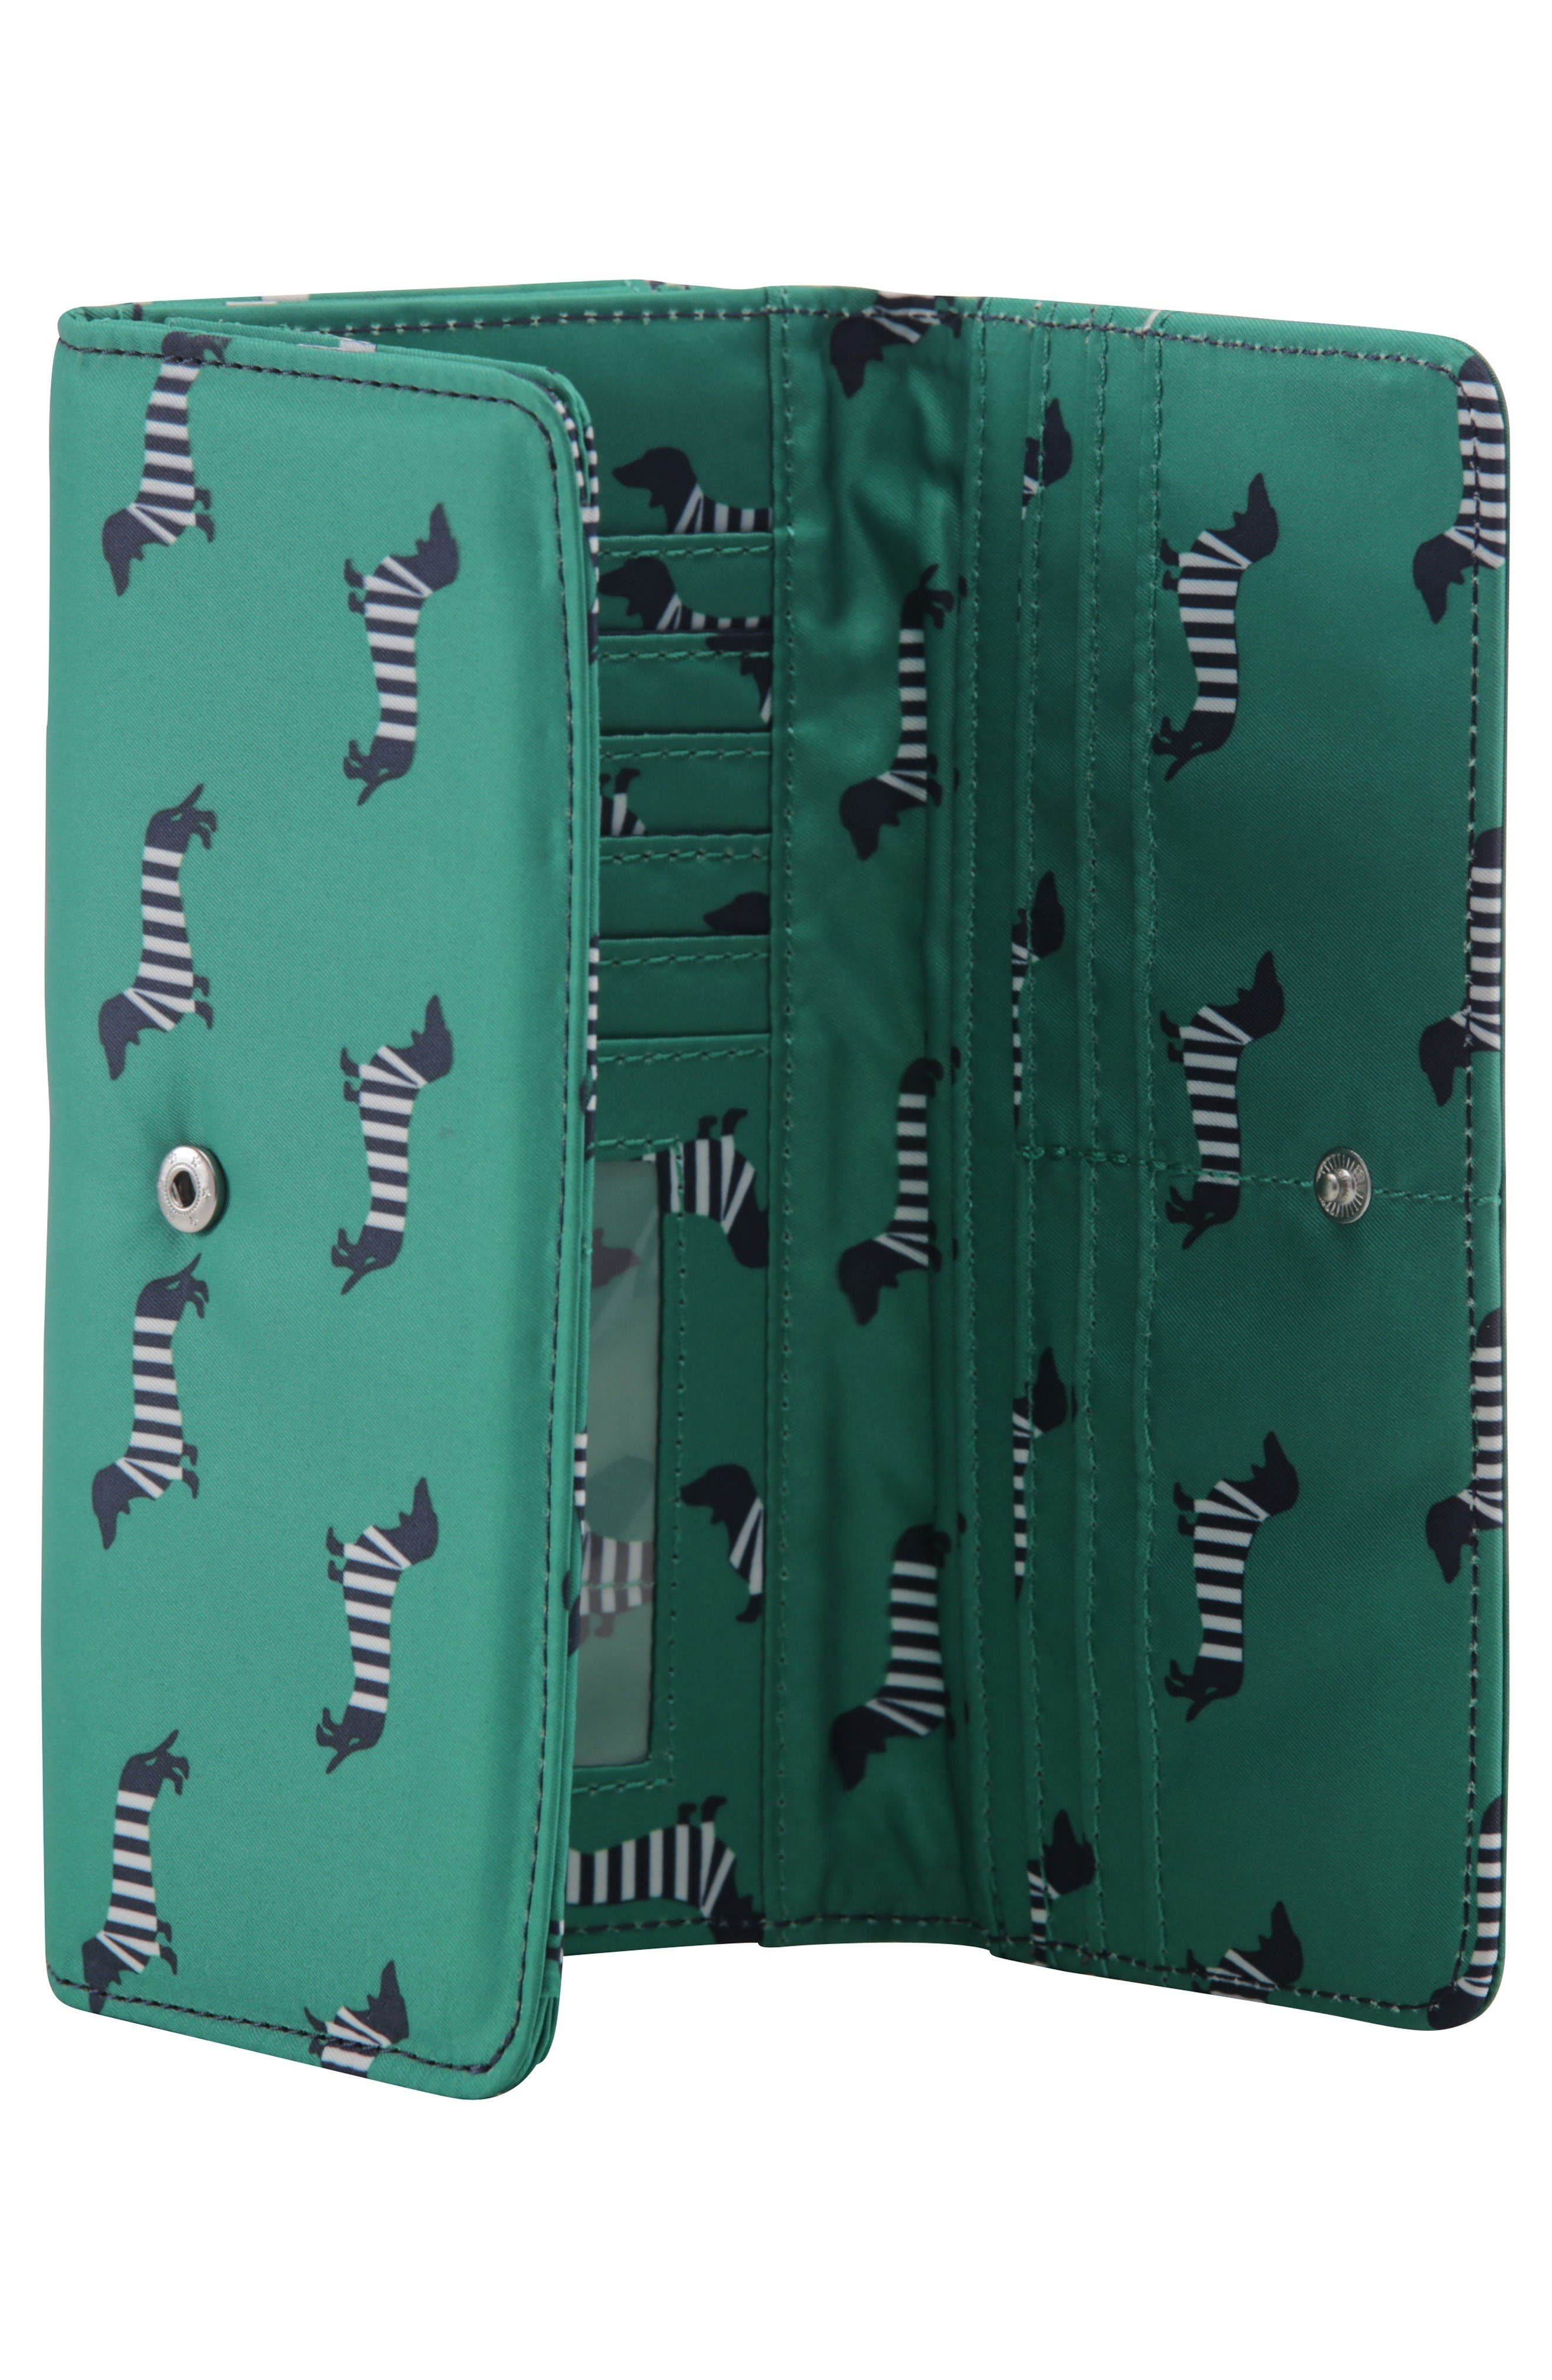 Be Rich - Coastal Collection Trifold Clutch Wallet,                             Alternate thumbnail 7, color,                             Coney Island